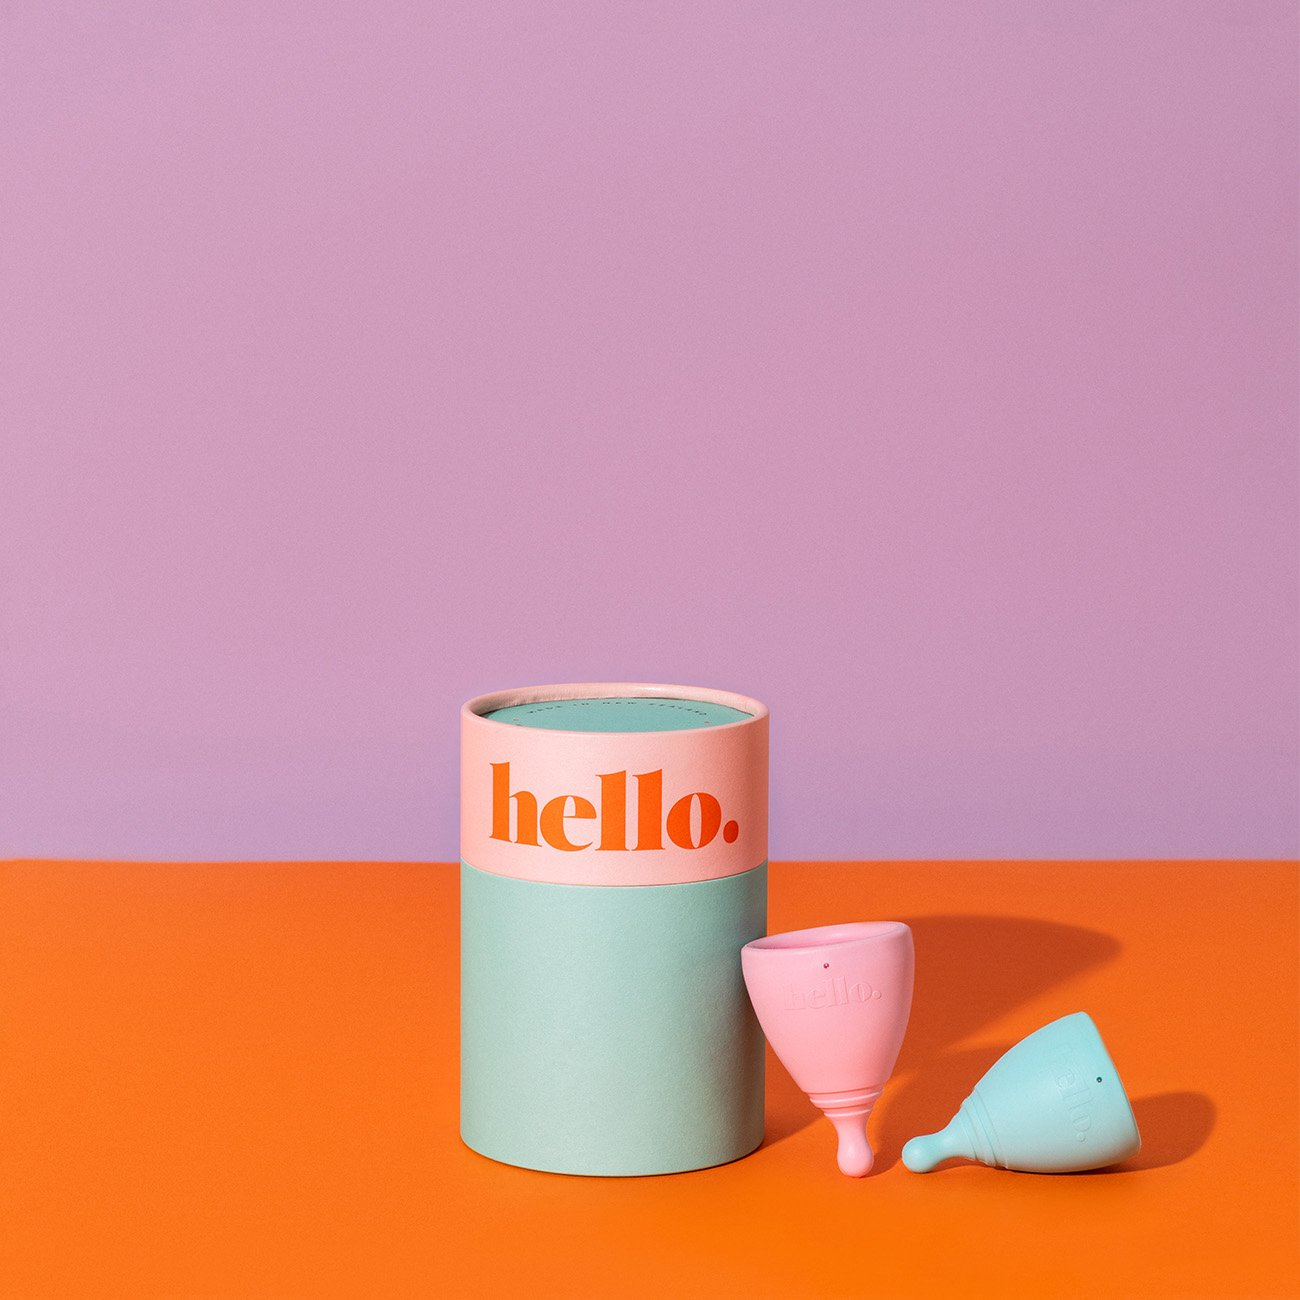 Hello Double Box menstrual cup comes in two sizes colourful menstrual cup